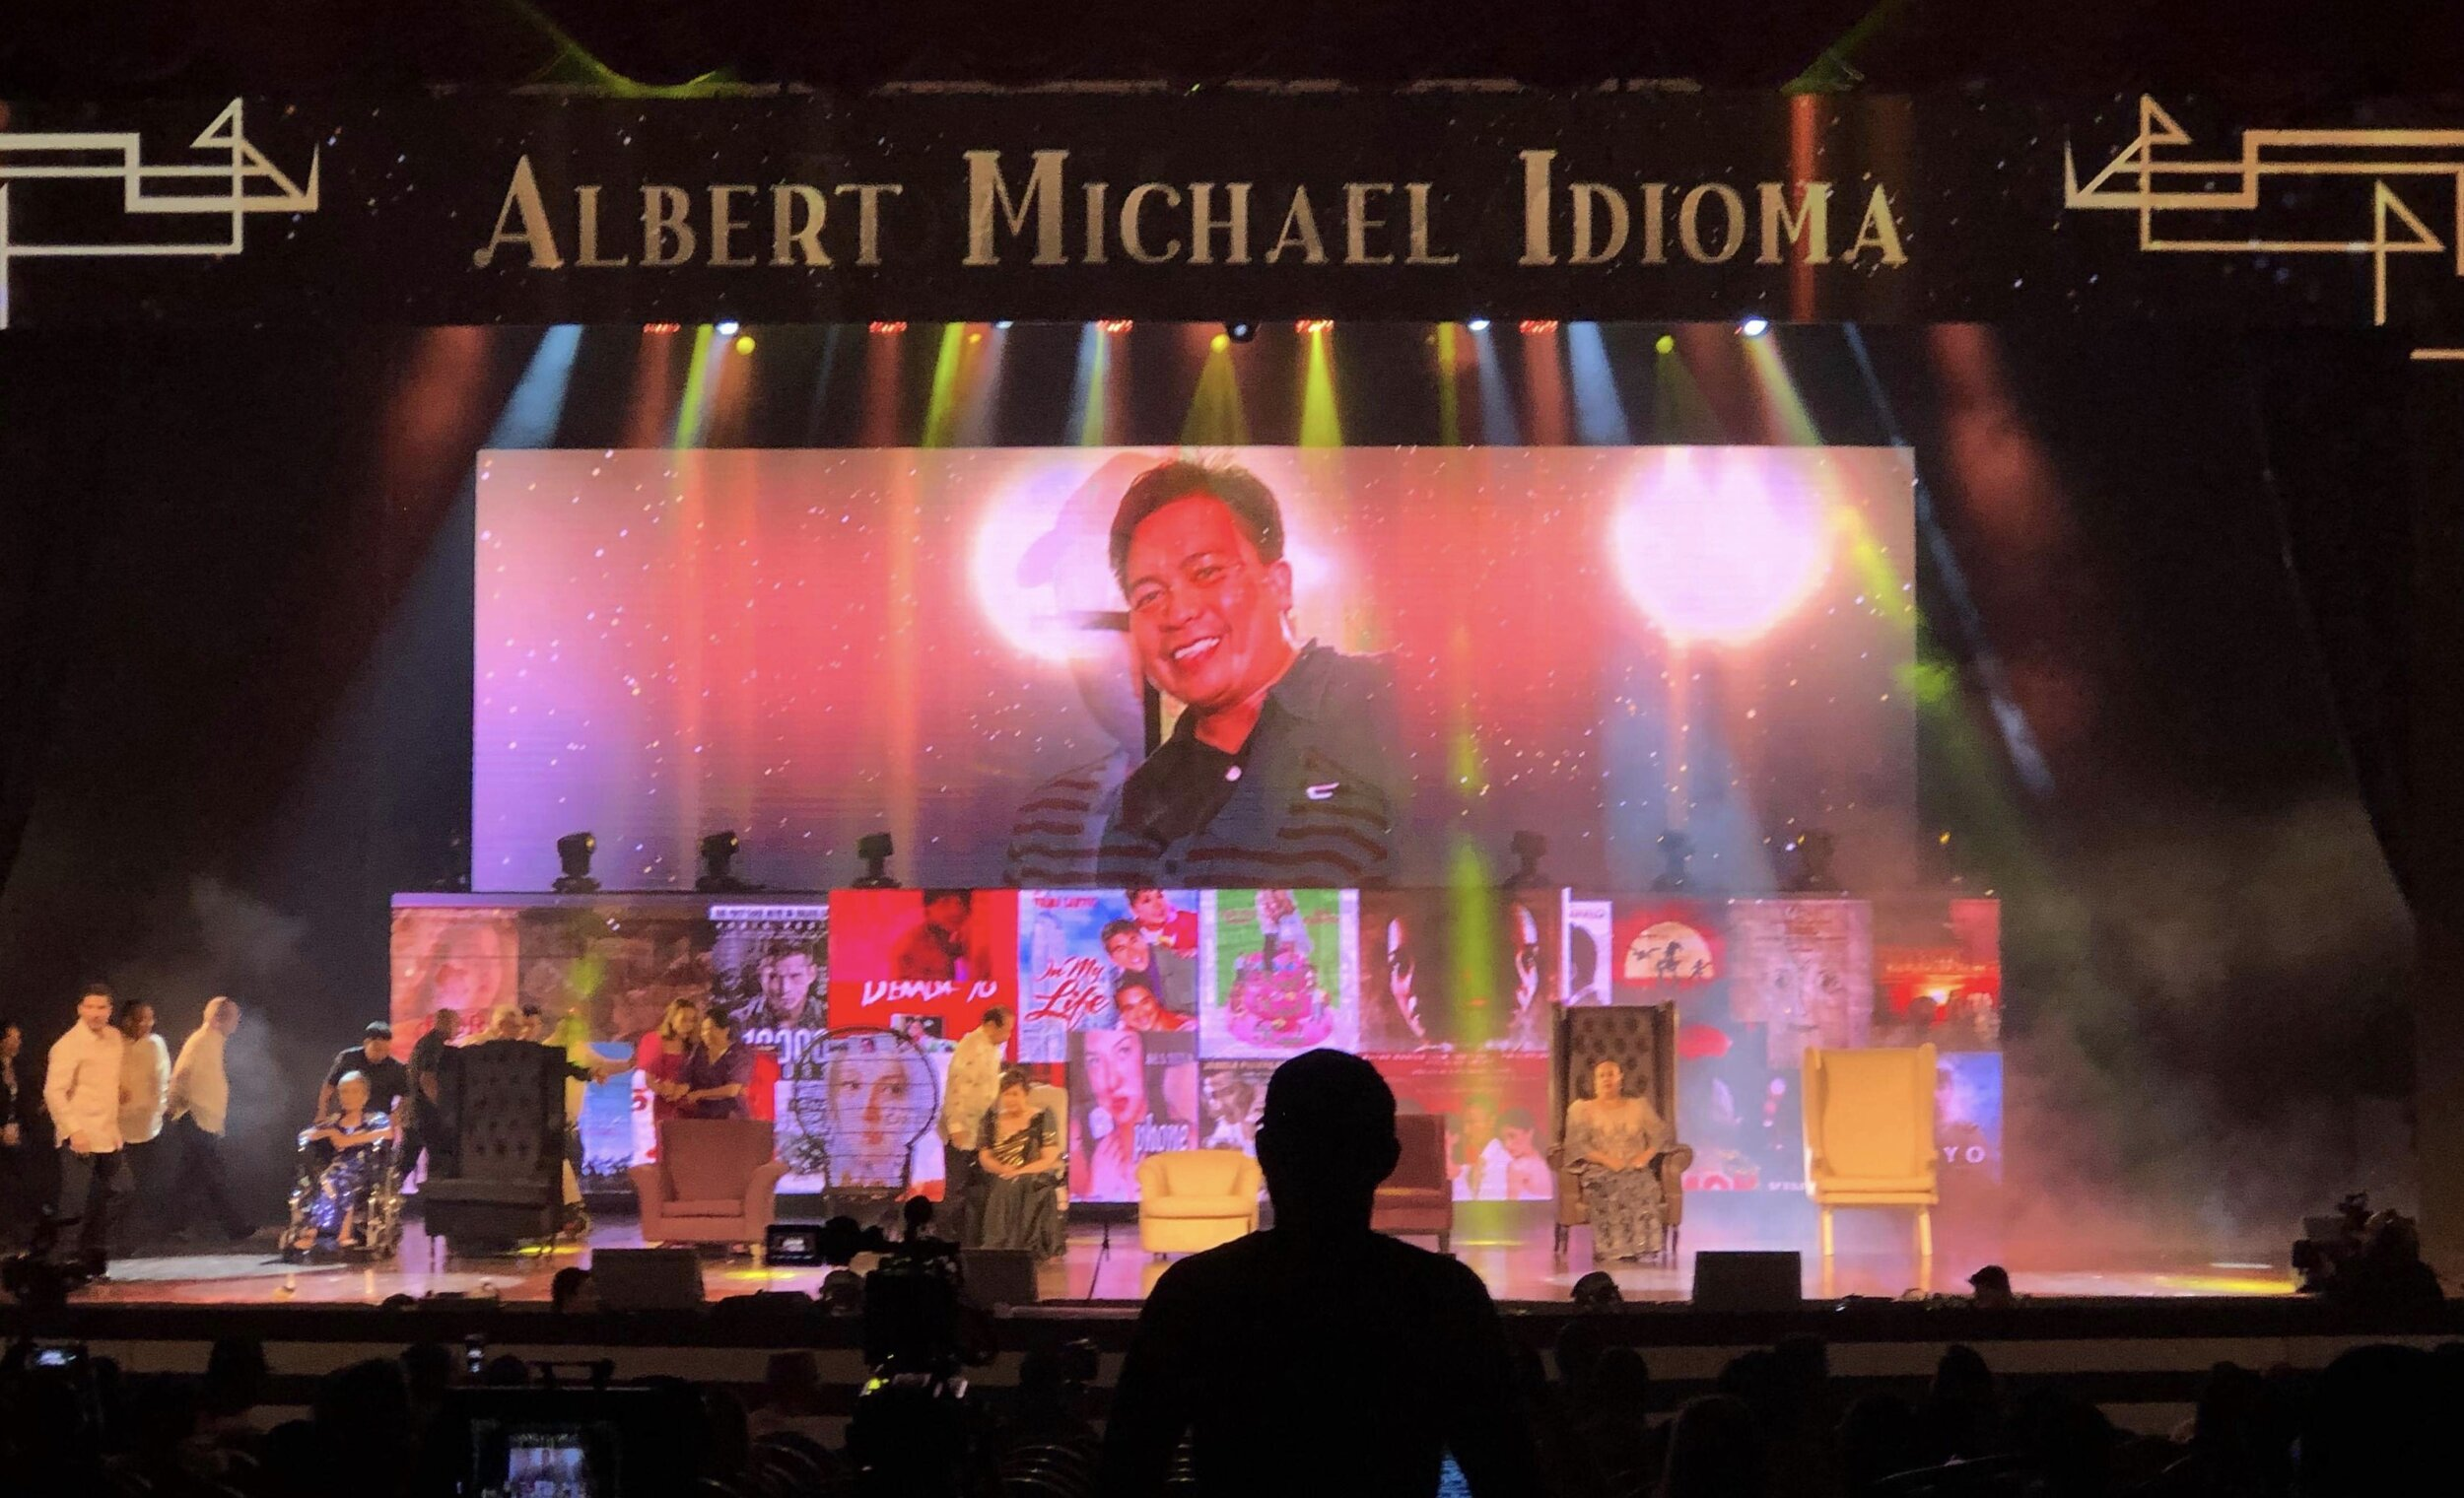 Mike Idioma renowned as one of the Icons of Philippine Cinema.